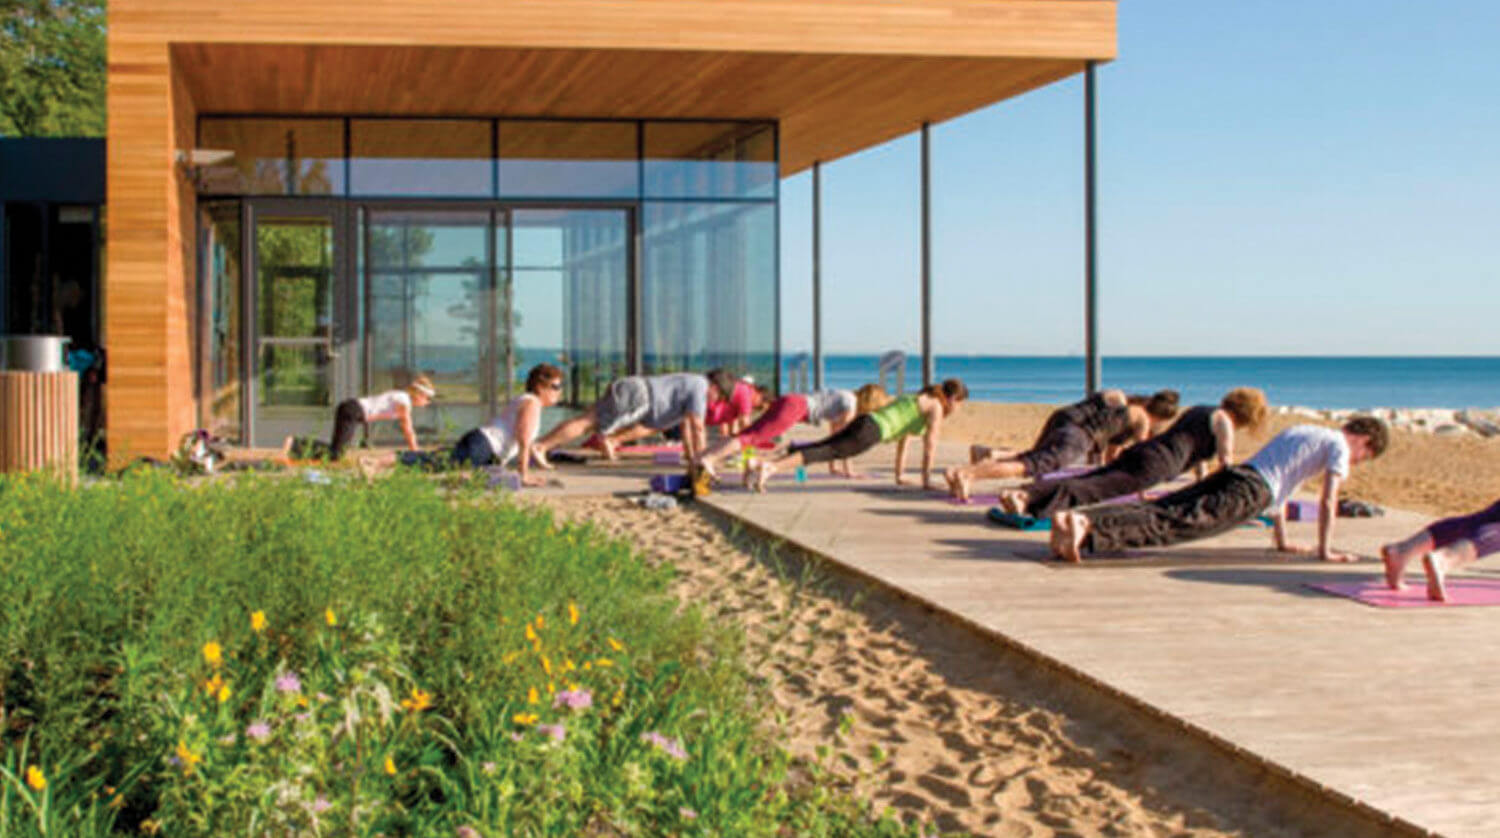 Park District of Highland Park – Rosewood Beach Development yoga